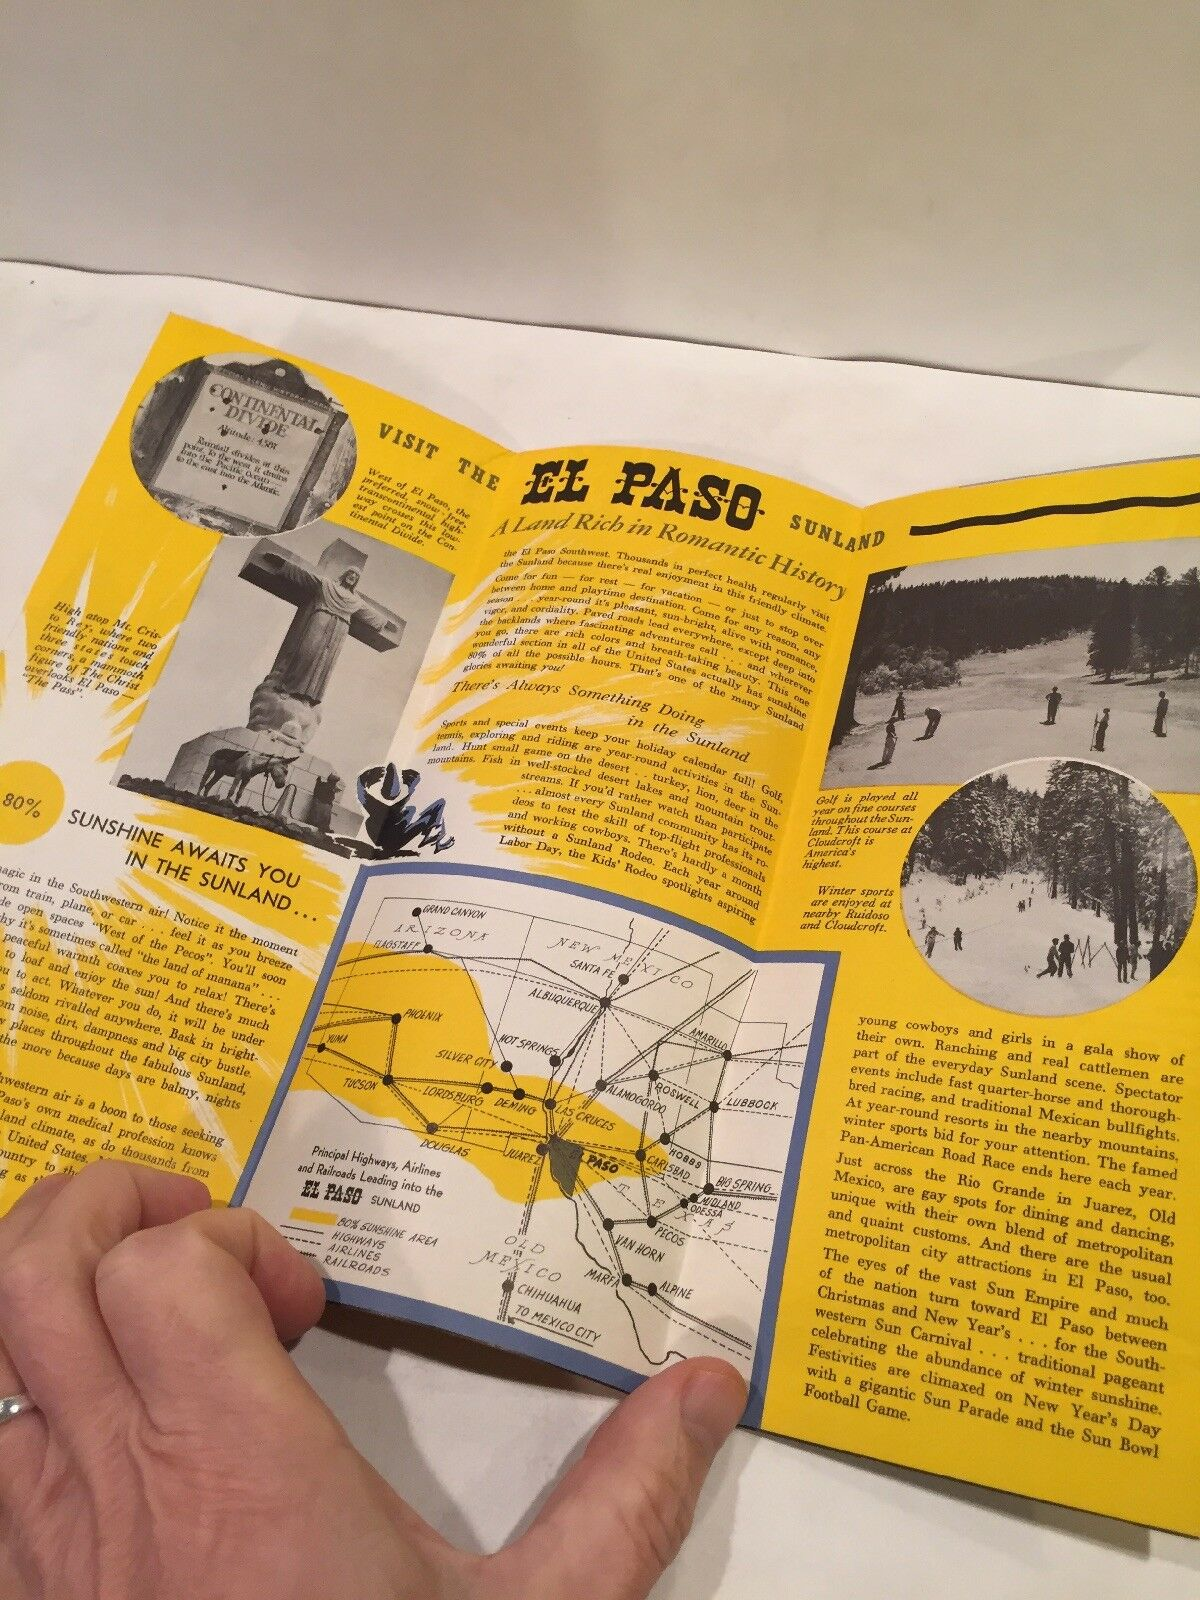 1950 EL PASO TEXAS SUNSHINE PLAYGROUND OF THE BORDER Travel Brochure Map Of Alamogordo And El Paso on map of houston, map of eastern id, map of liberal, map of corbin, map of nolan county, map of austin, map of tampa st petersburg, map of beebe, map of hamtramck, map of culiacan, map of indiana in, map of santa teresa, map of rio rico, map arizona, map of young county, map of ft bliss, map of wilkes-barre, map of cancún, map of colonial heights, map of ft stockton,